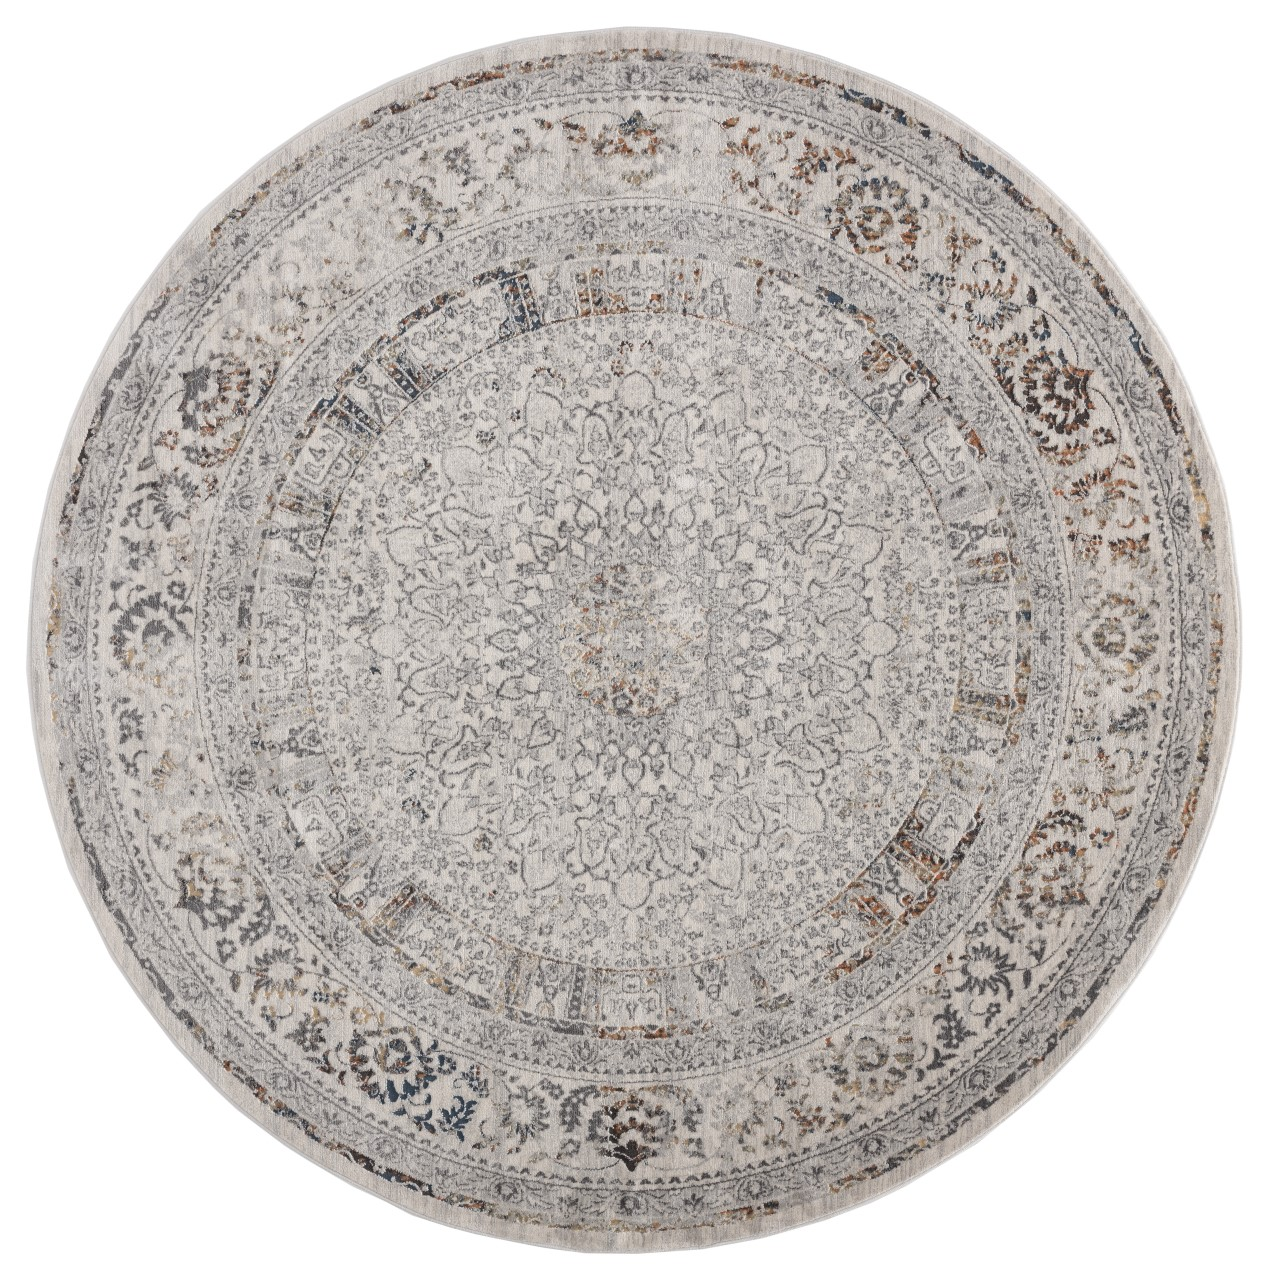 United Weavers Allure Dion Round Rug